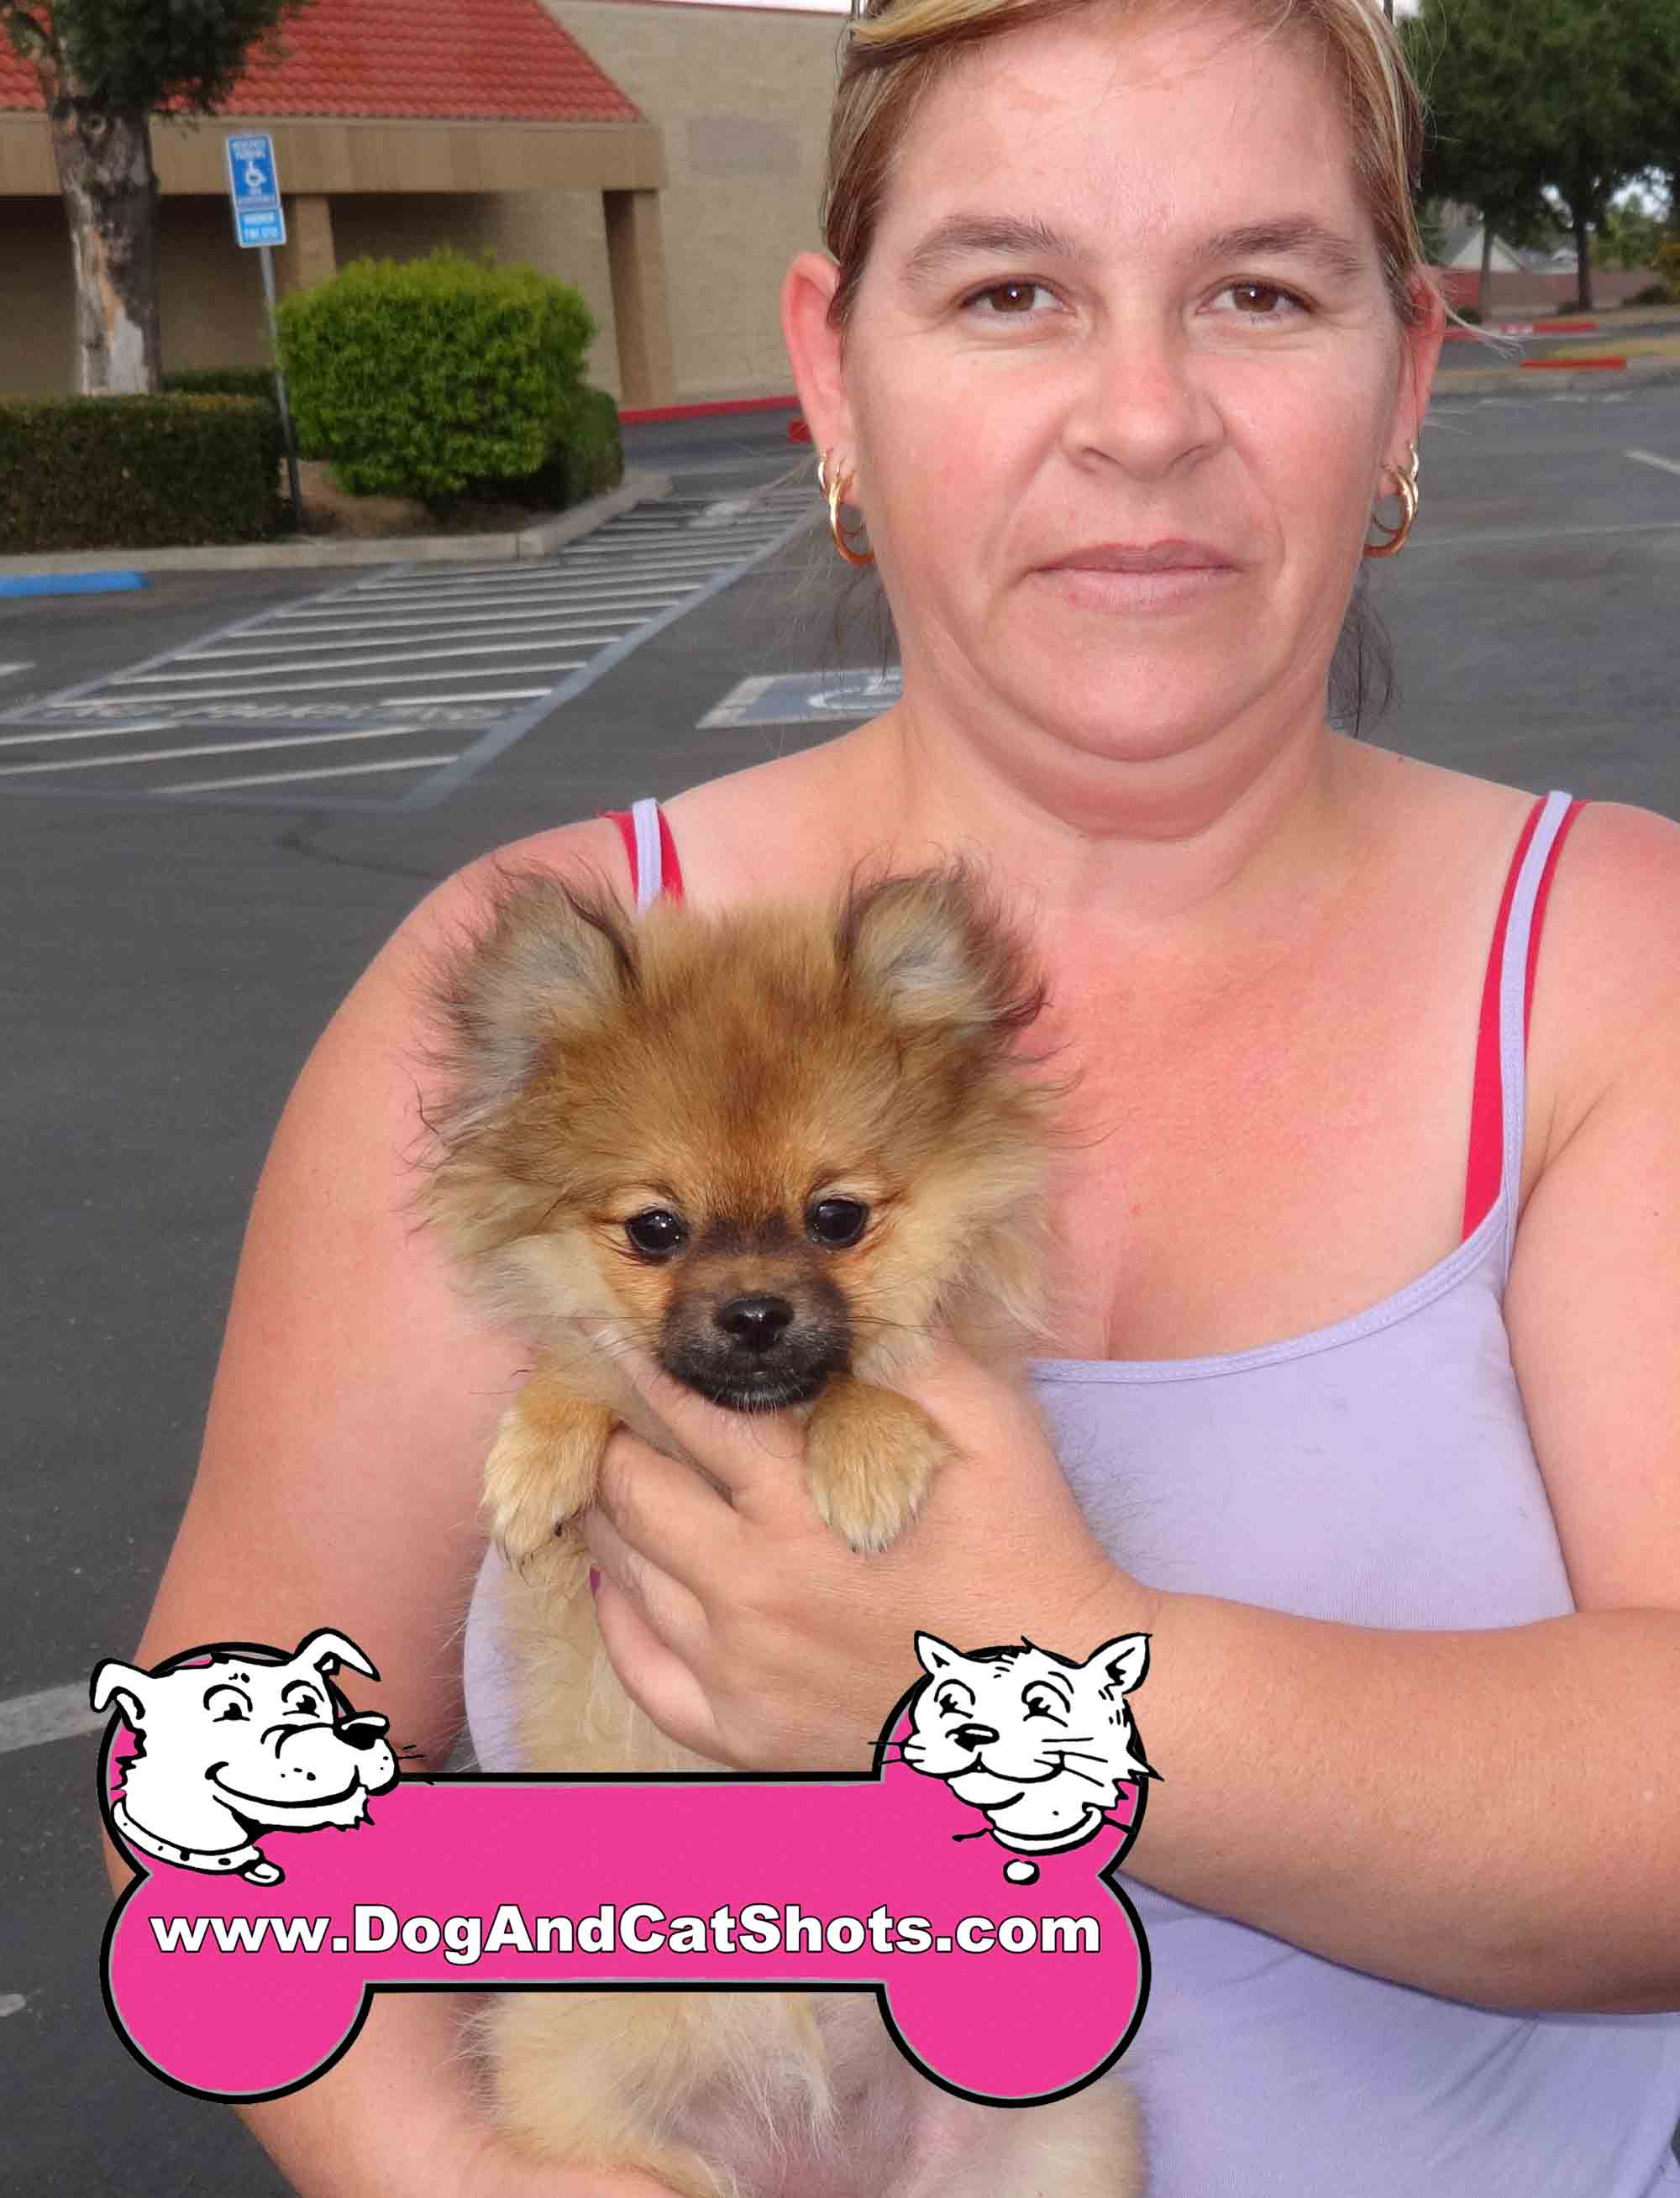 pomeranian and cats low cost dog and cat shots in northern california we met 248